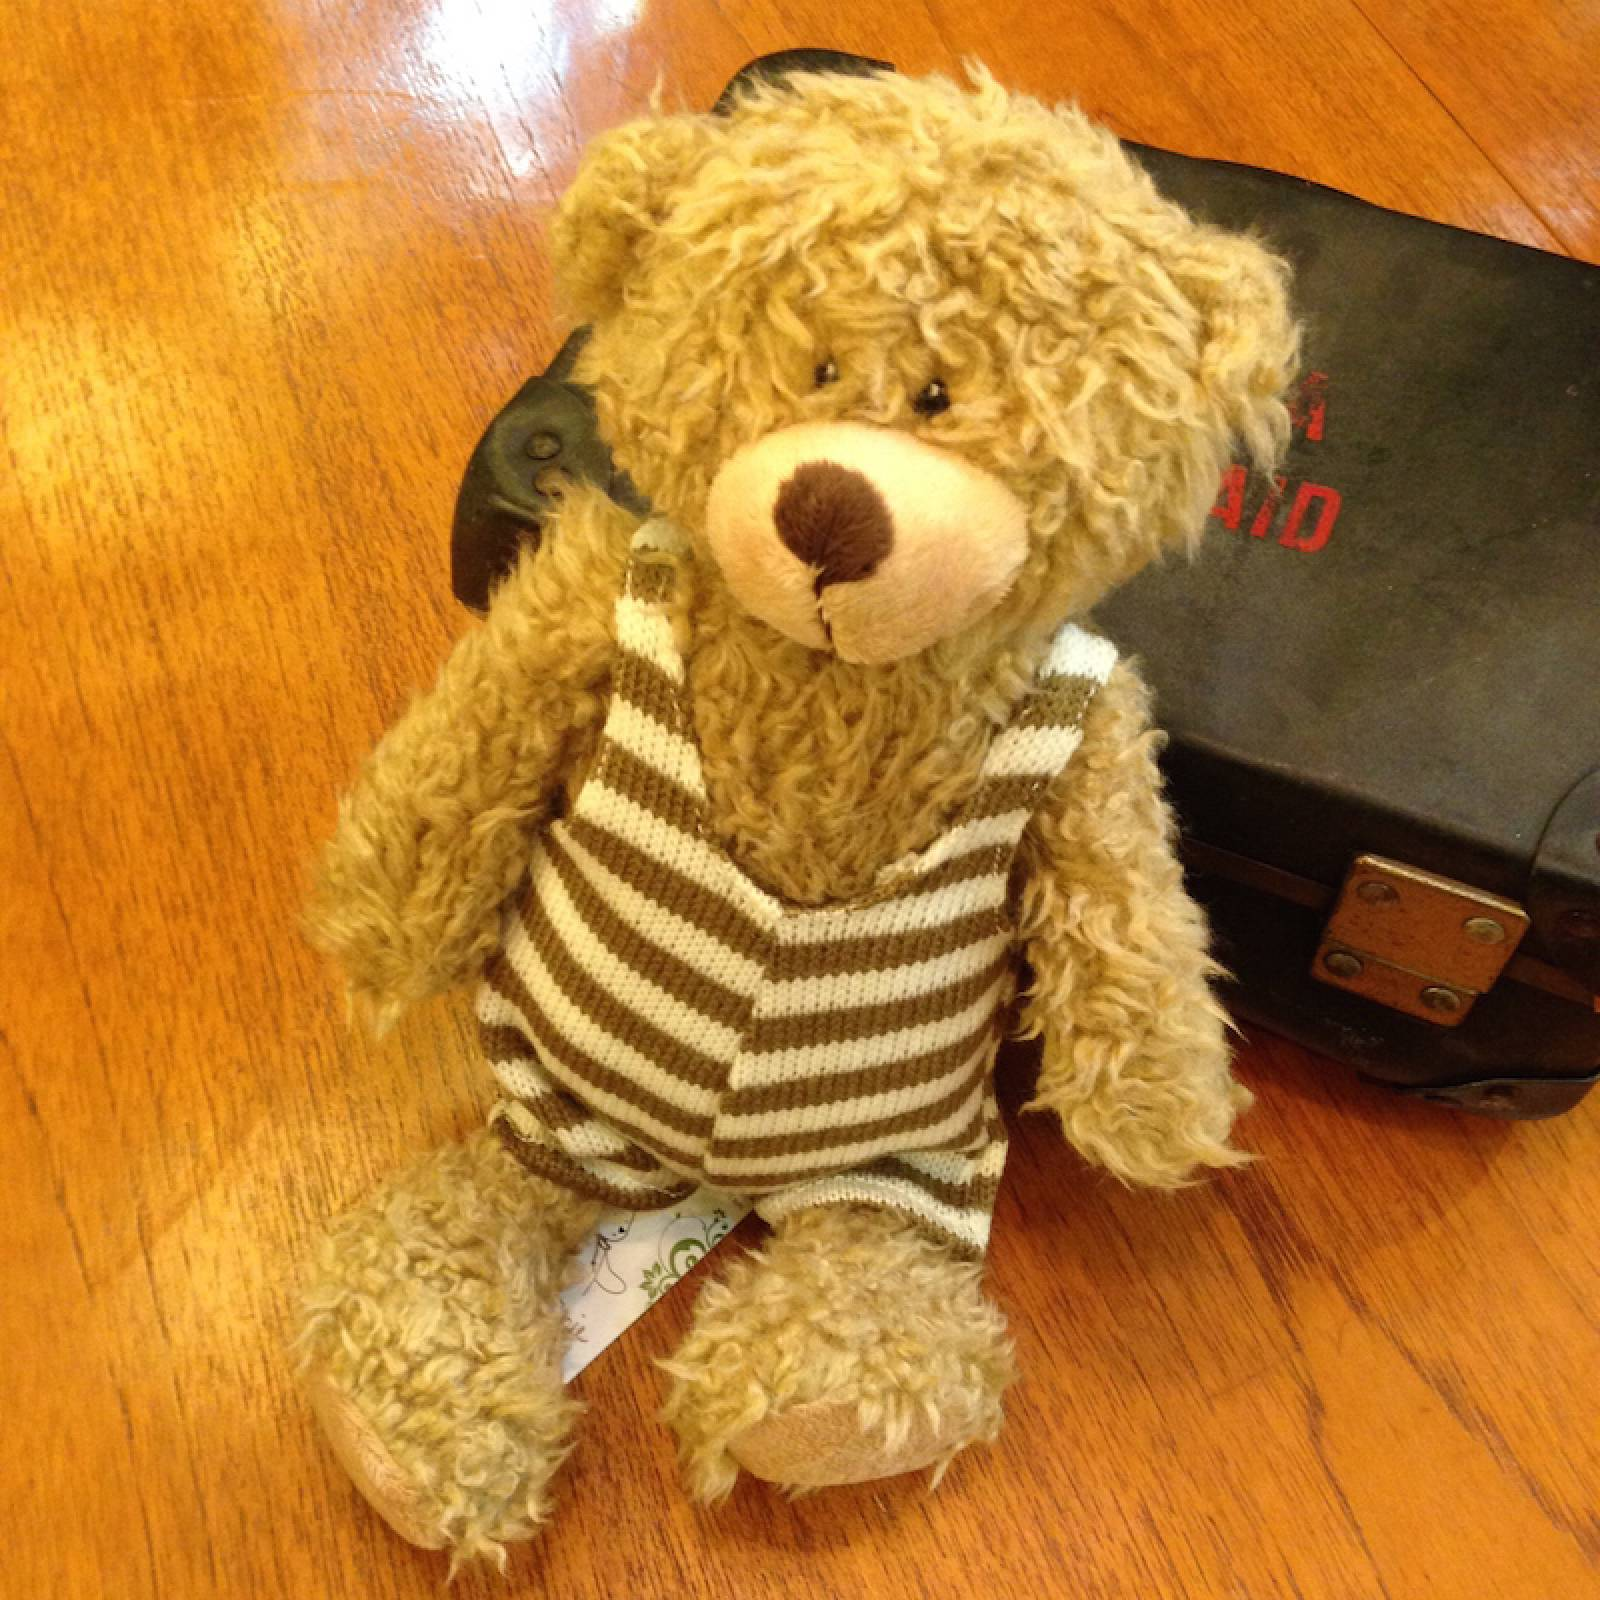 Bear Soft Toy Striped Dungarees In Decorative Gift Bag 35cm